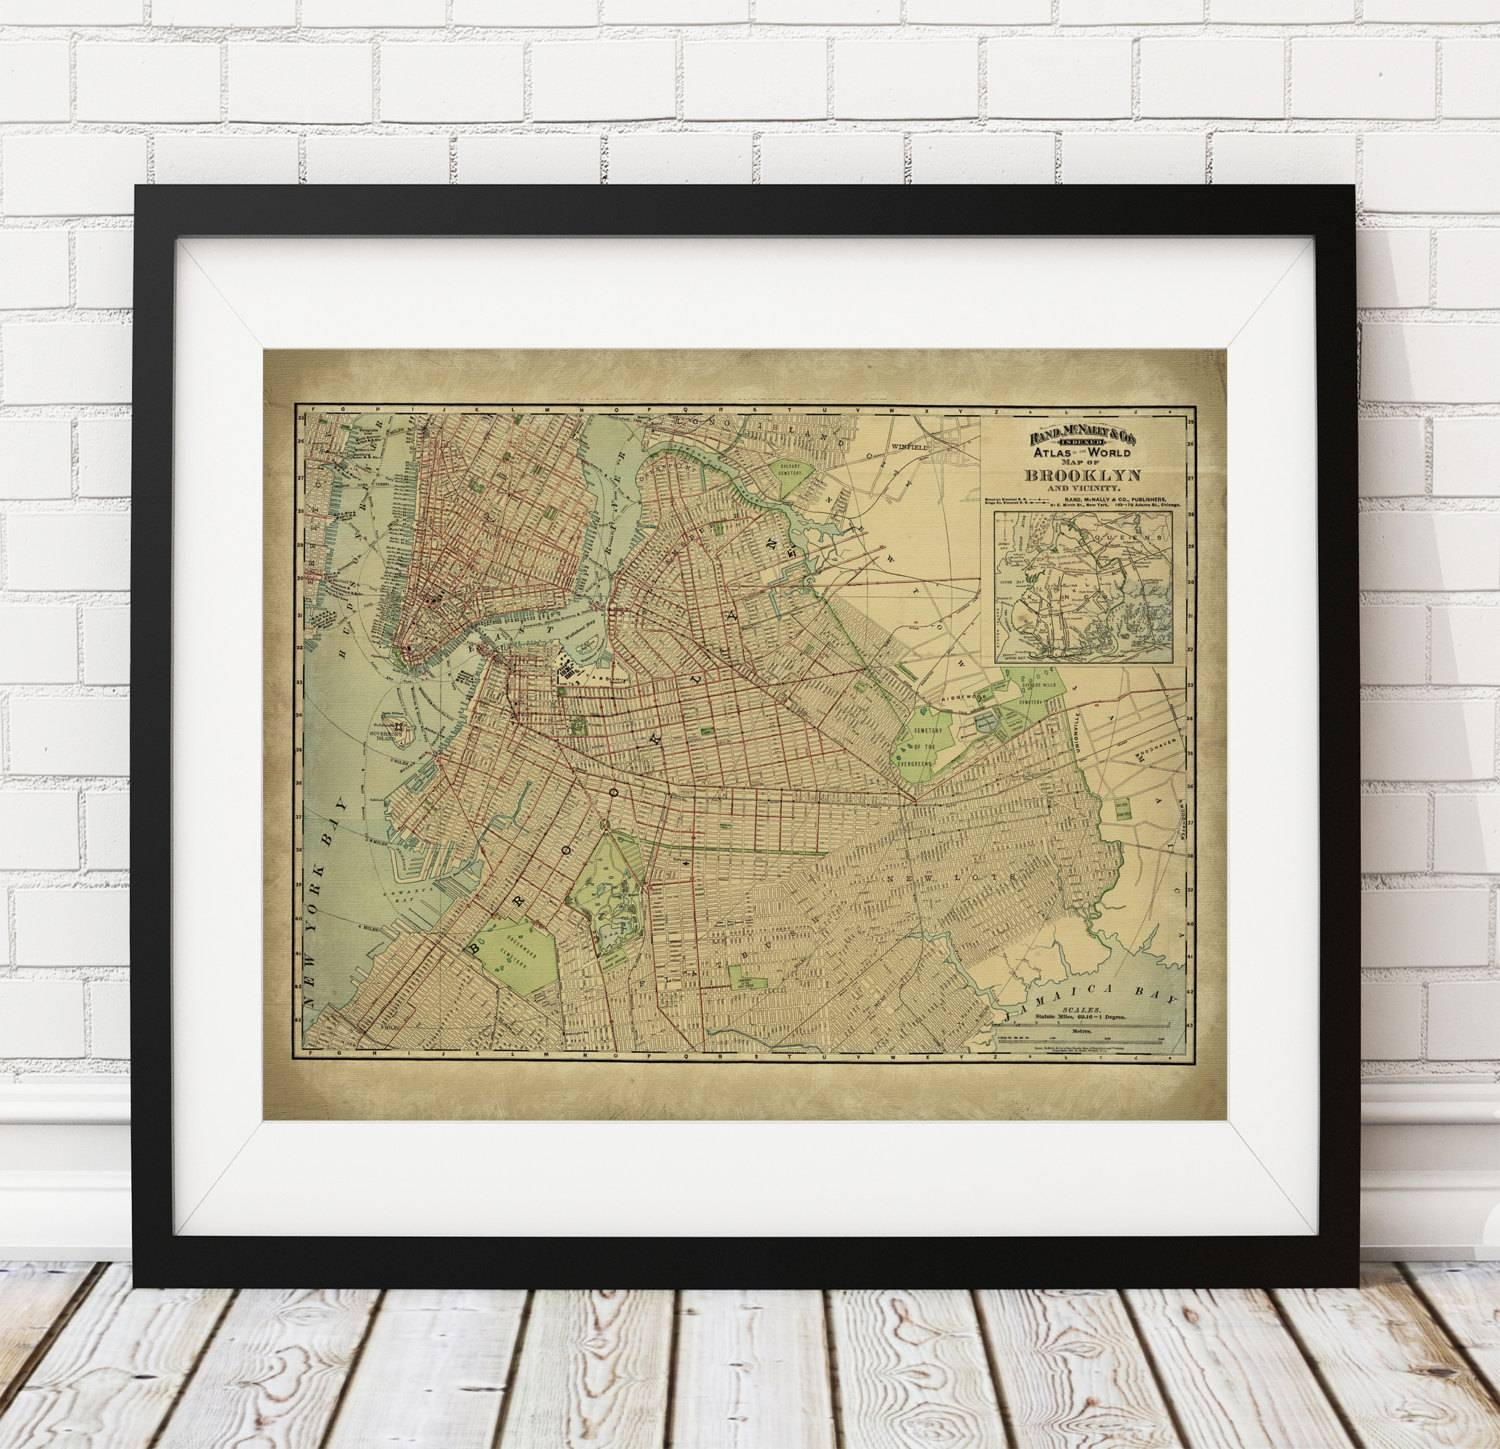 Brooklyn Map Print, Vintage Map Art, Antique Map Wall Decor, New With Regard To Most Popular Brooklyn Map Wall Art (View 10 of 20)